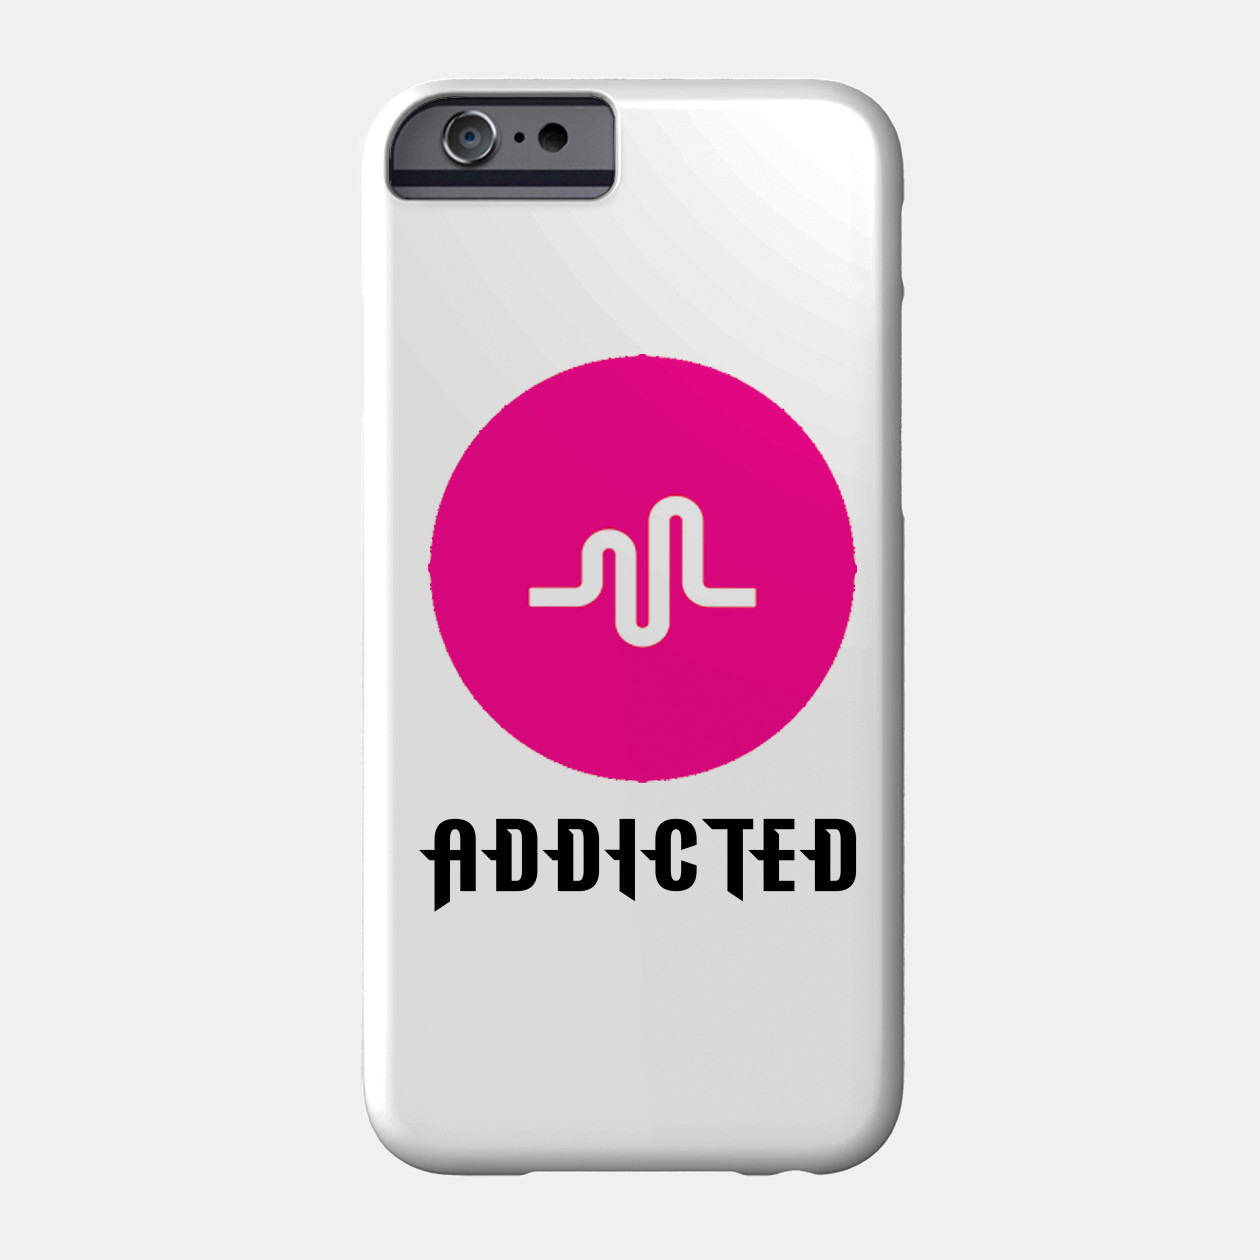 SM T825NZKAINS likewise 547669 Musically Addicted T Shirt in addition Iphone 6 Case Neo Hybrid 5 5 moreover Cell phone additionally Iphone Se Case Neo Hybrid. on phone cases for samsung galaxy s4